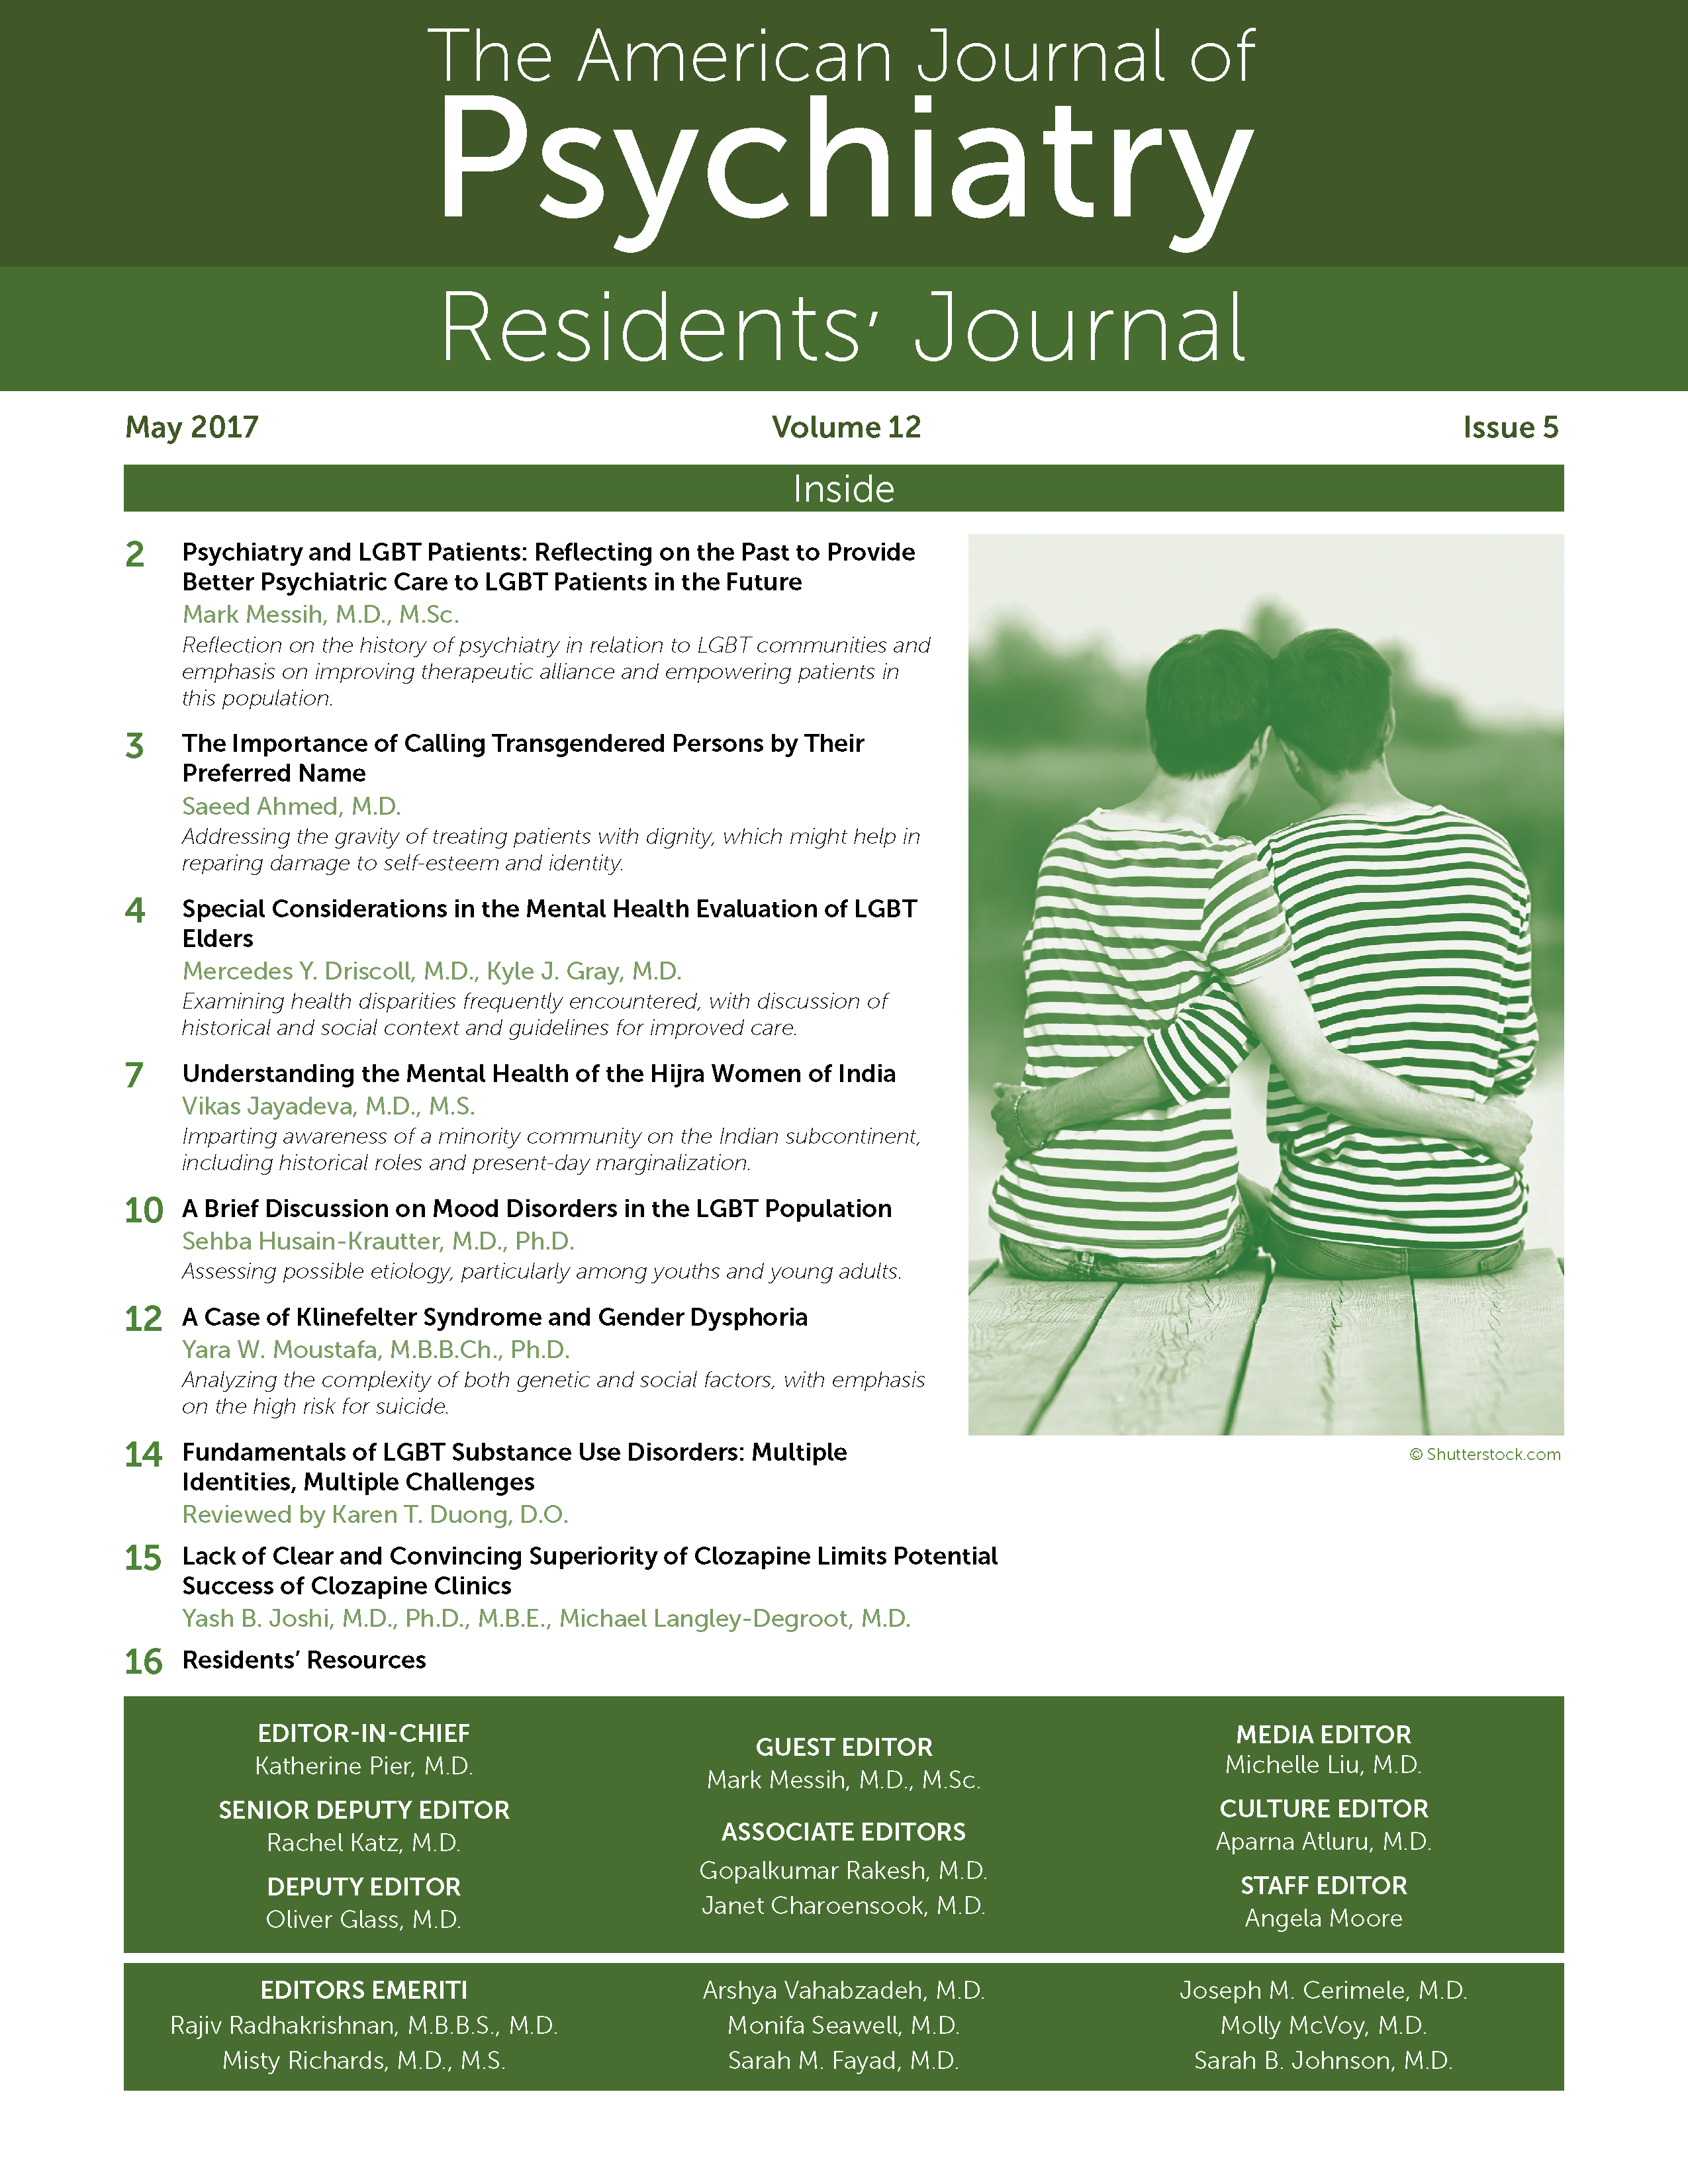 Review of systems for psychiatric patients - Editorial Psychiatry And Lgbt Patients